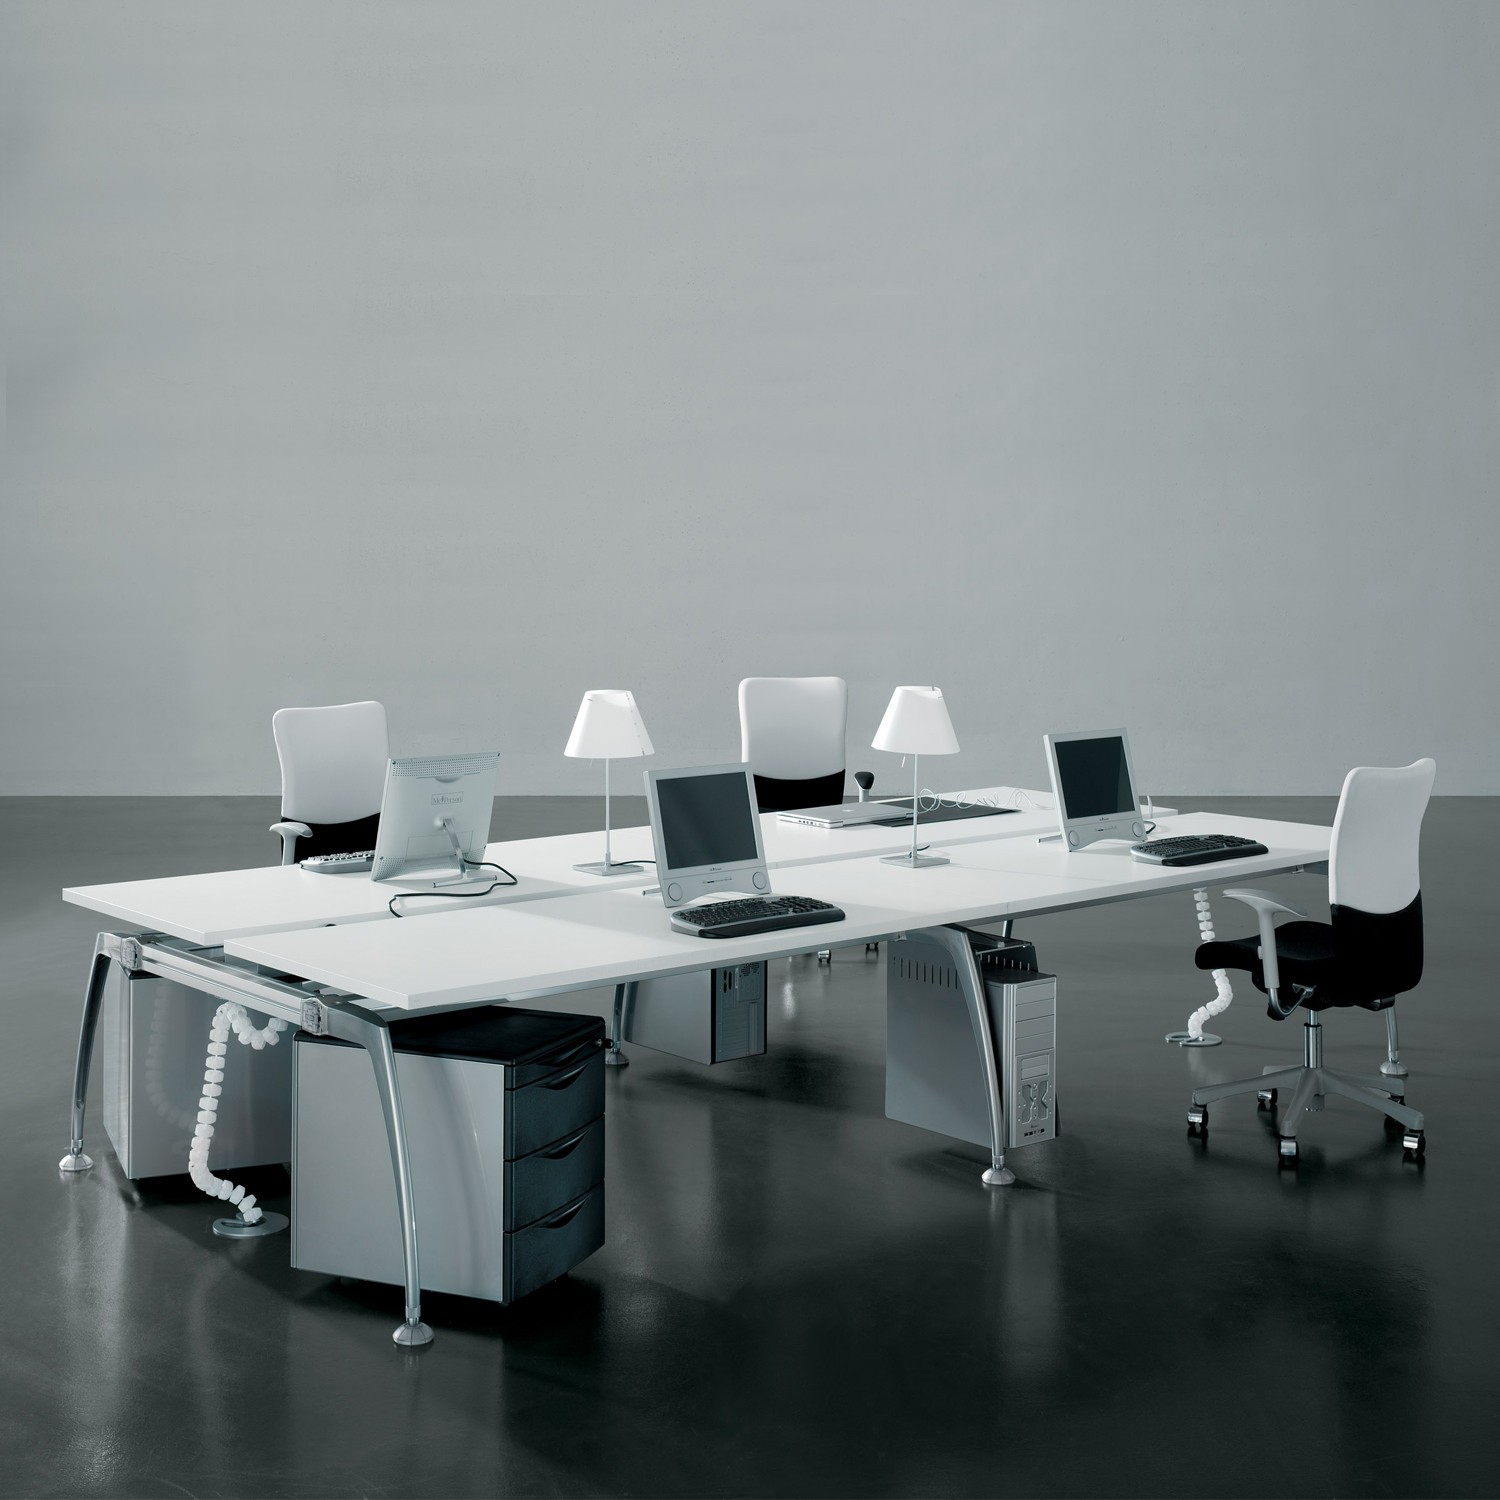 Tiper Desk Bench - face to face arrangement